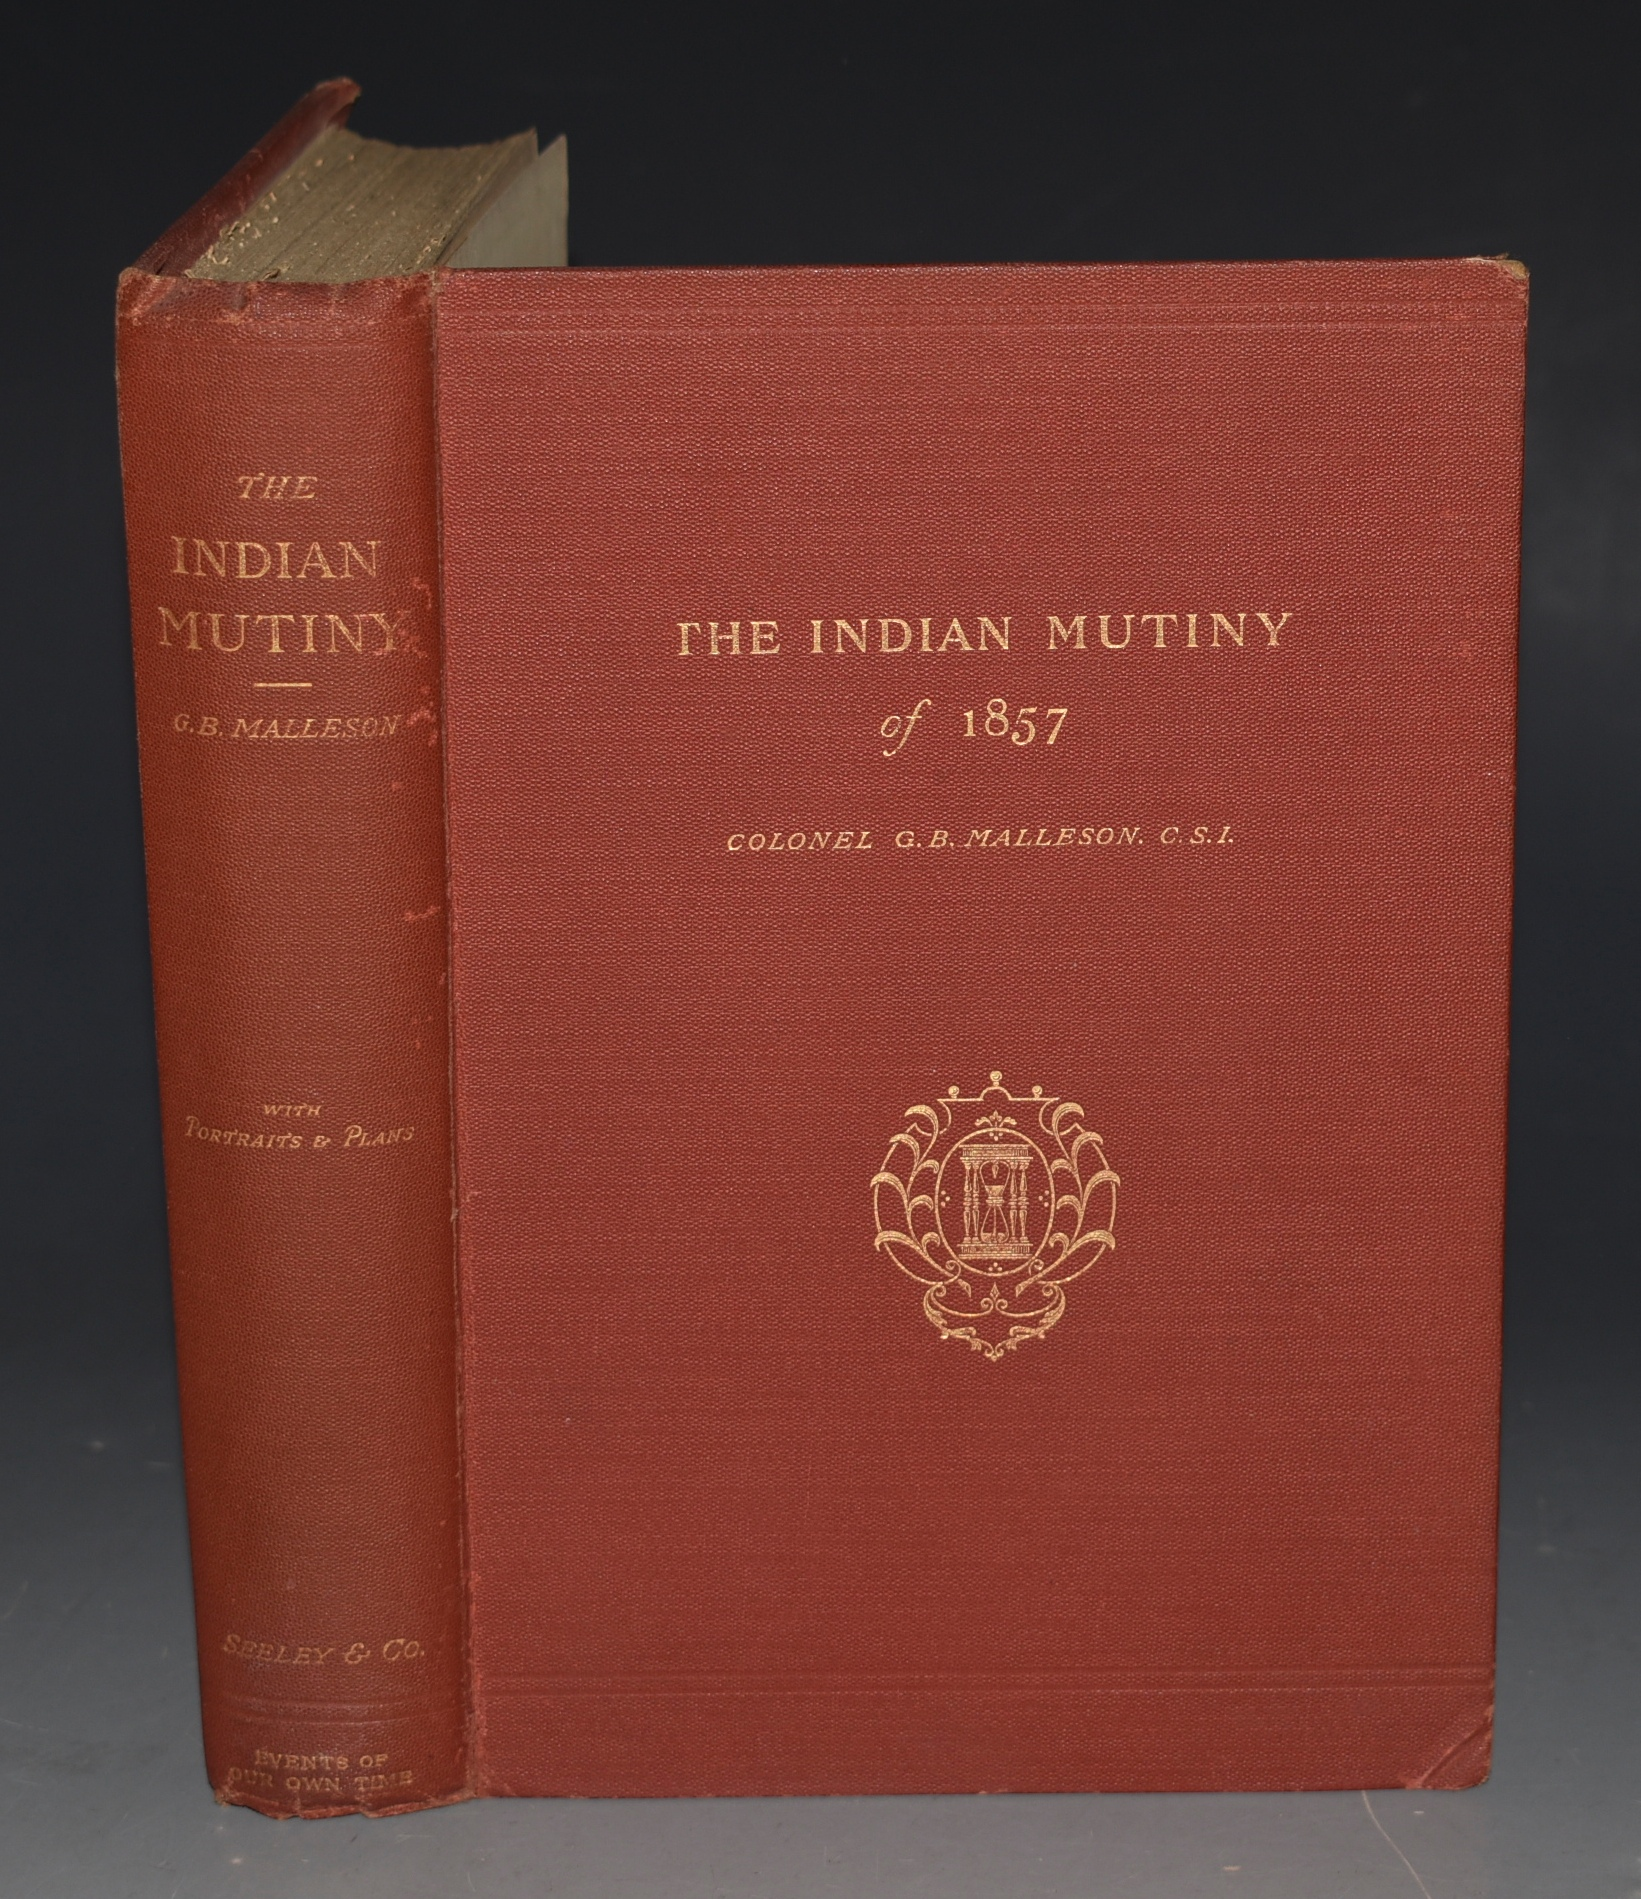 Image for The Indian Mutiny of 1857. With Portraits and Plans.